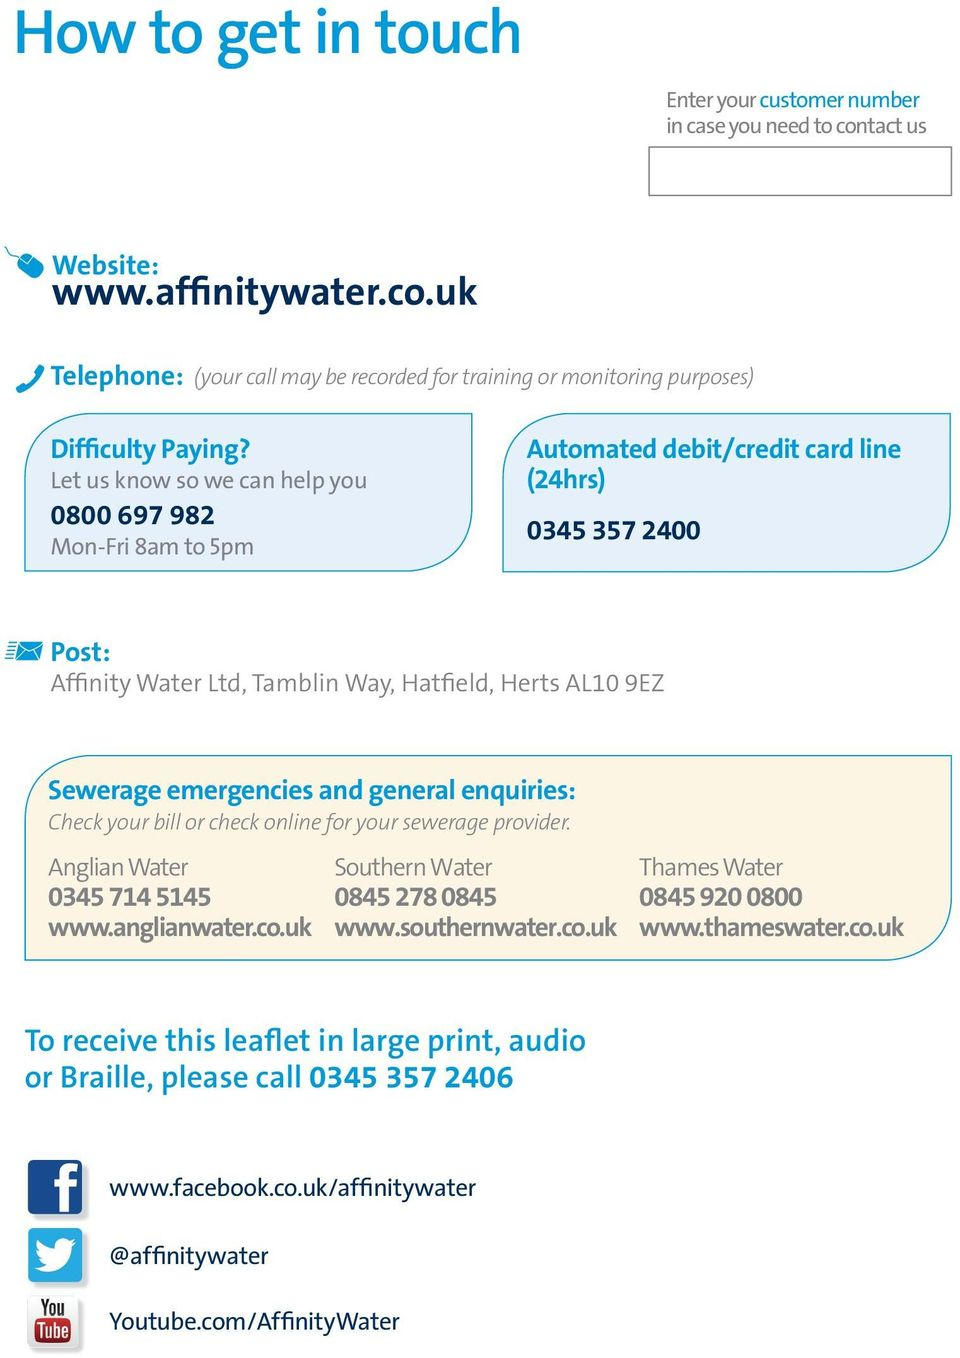 emergencies and general enquiries: Check your bill or check online for your sewerage provider. Anglian Water 0345 714 5145 www.anglianwater.co.uk Southern Water 0845 278 0845 www.southernwater.co.uk Thames Water 0845 920 0800 www.